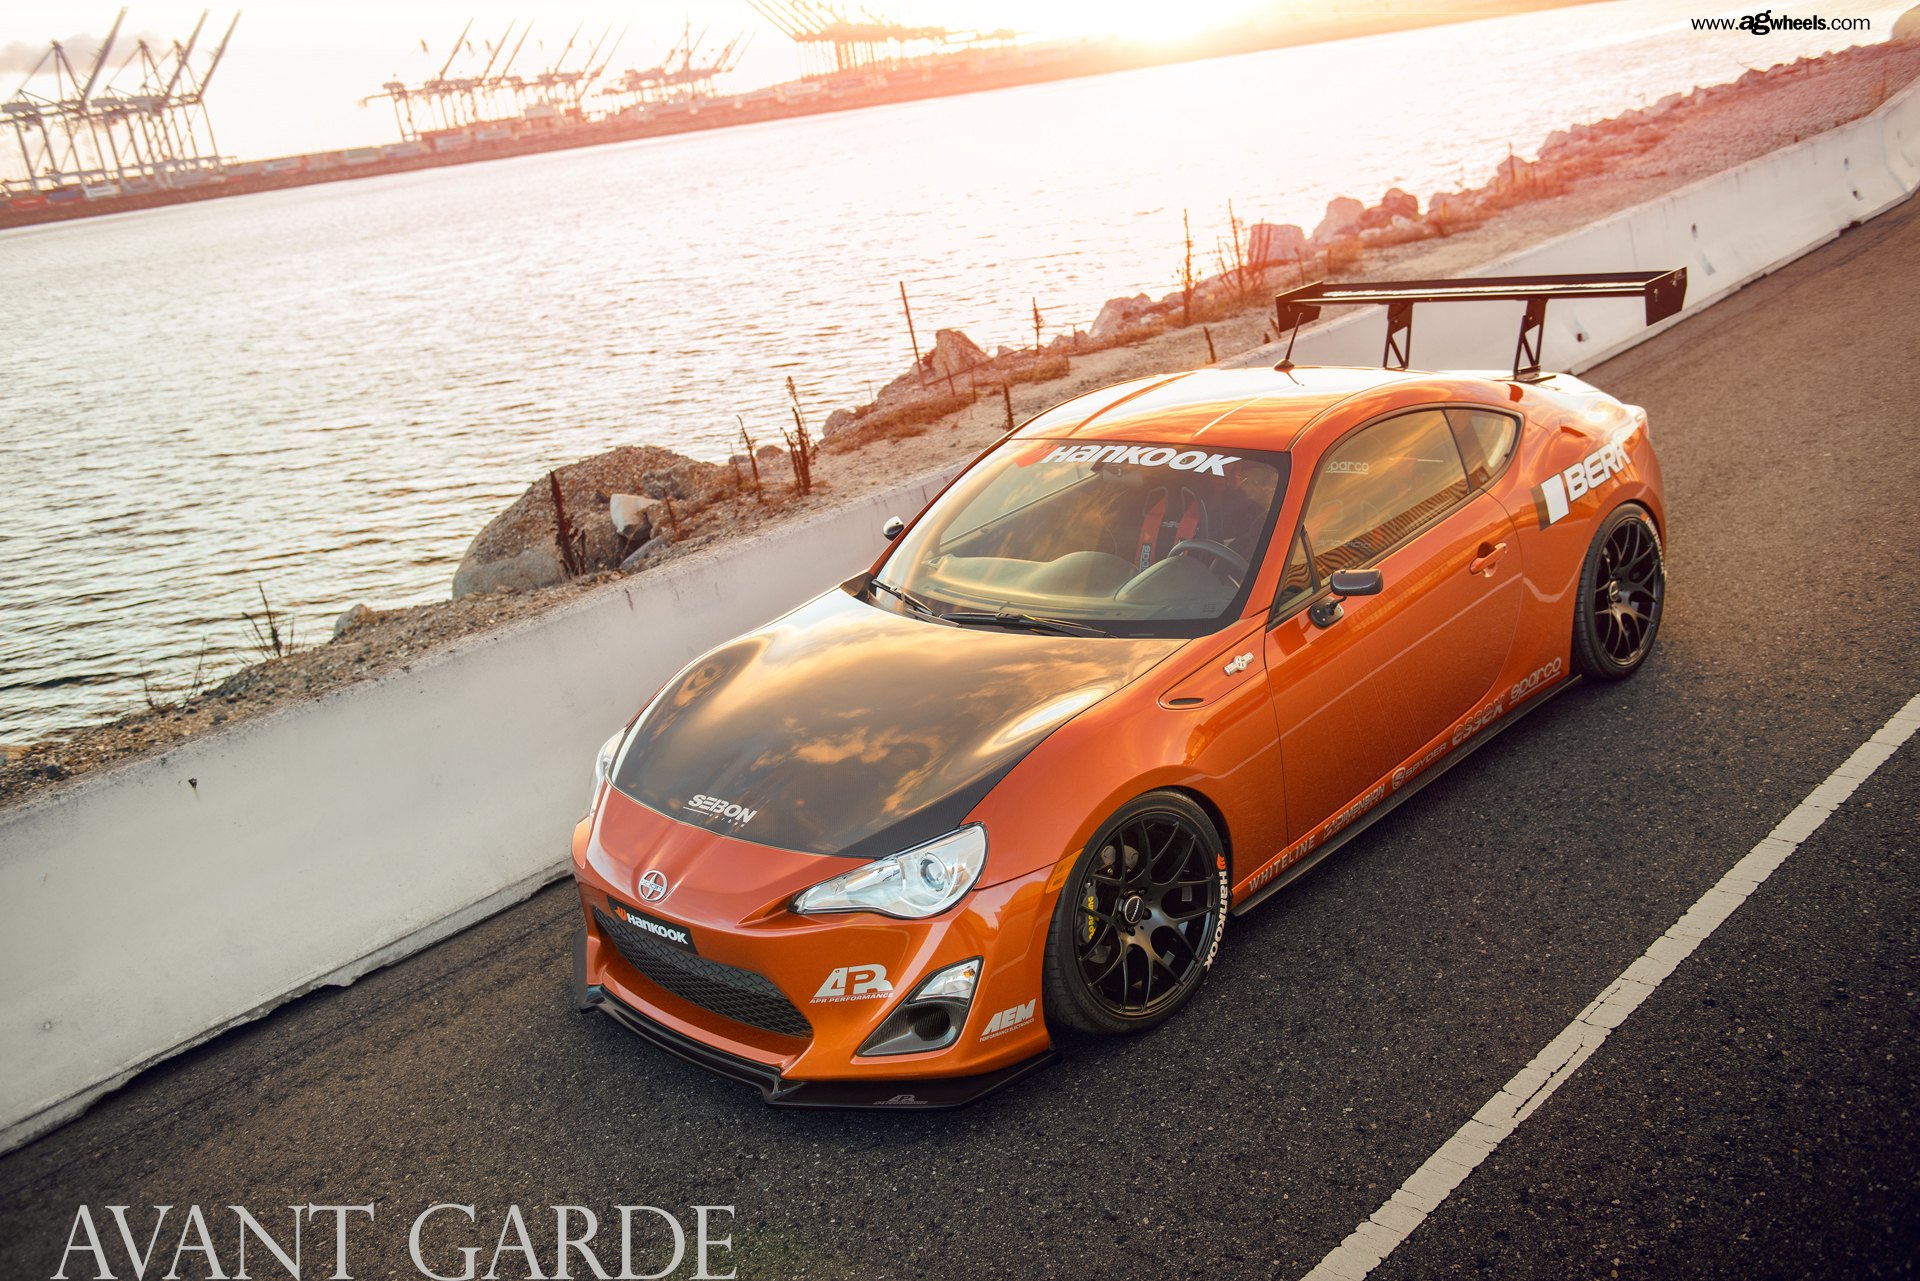 Scion Frs Parts >> Racing Pedigree Of Orange Scion Frs Emphasized By